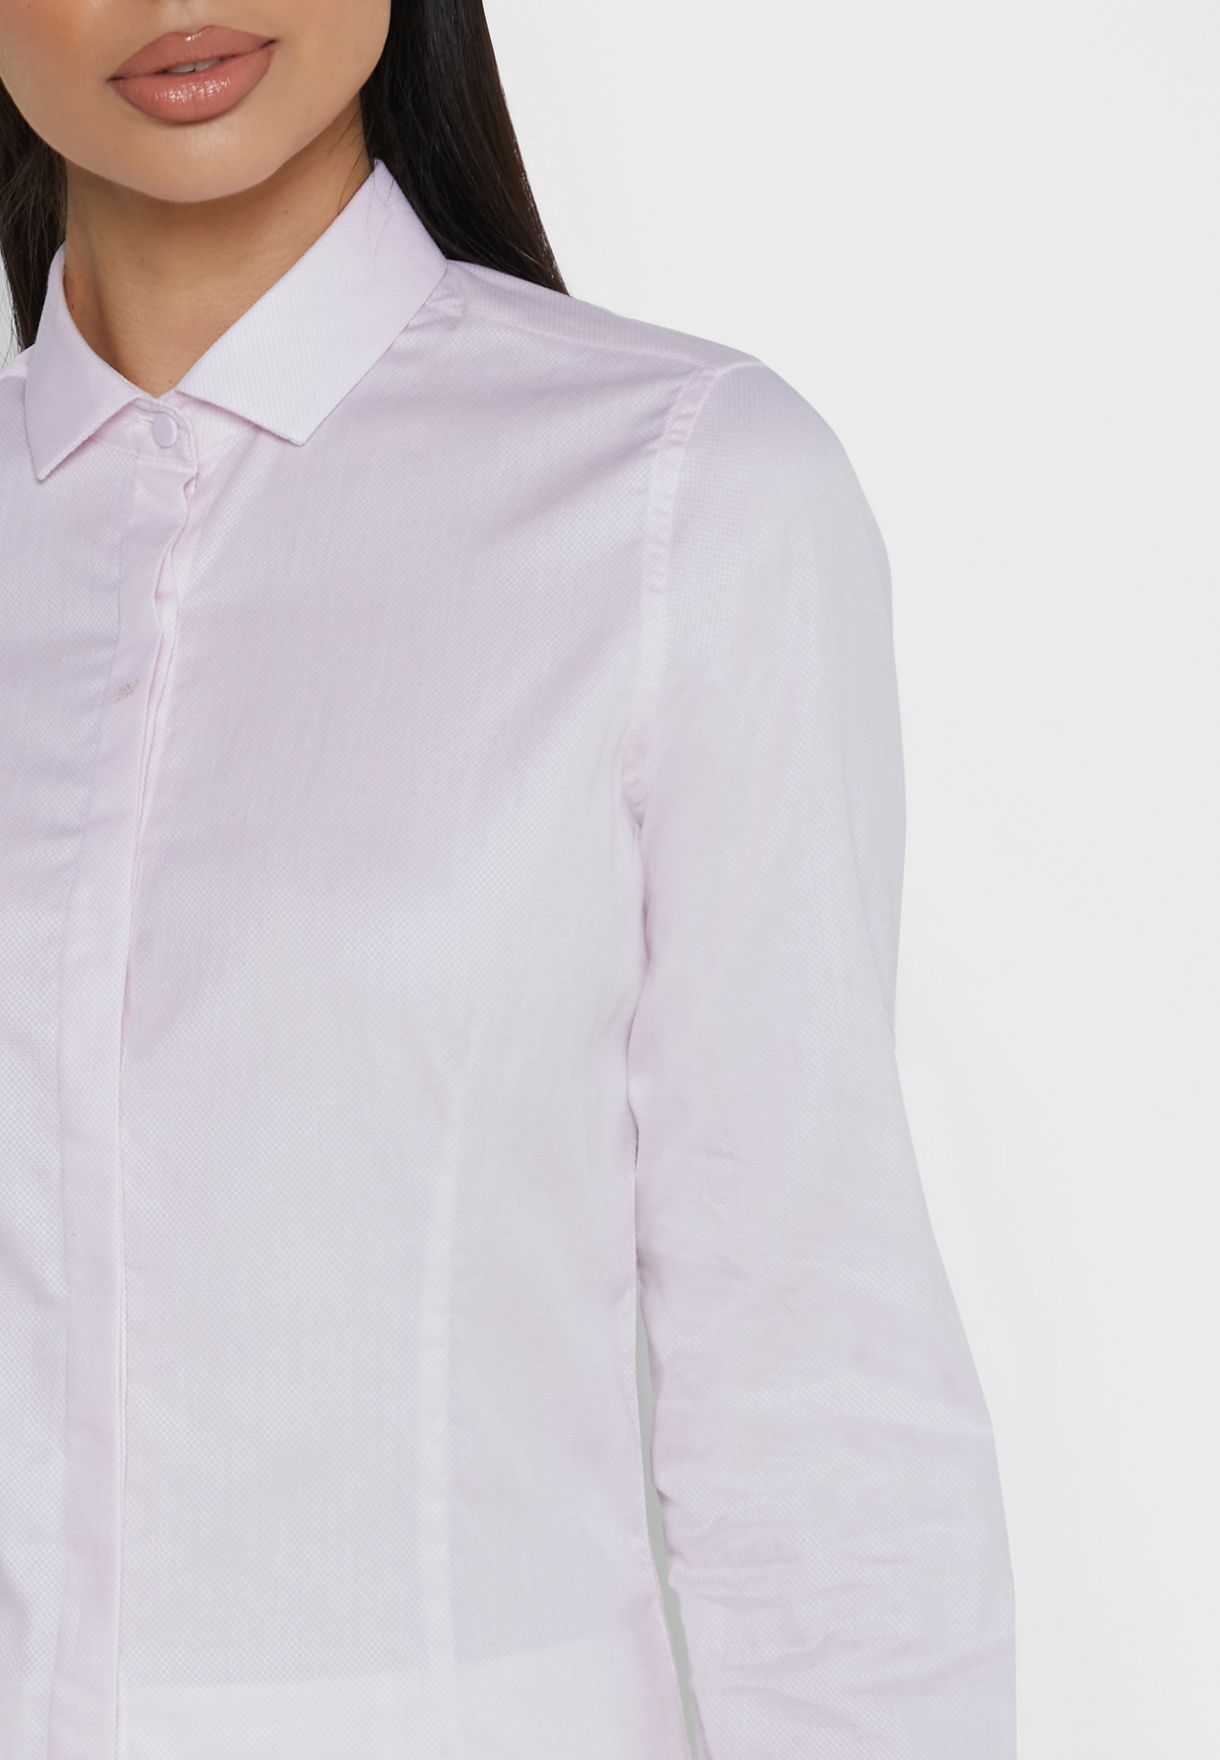 Embroidered Cuff Shirt